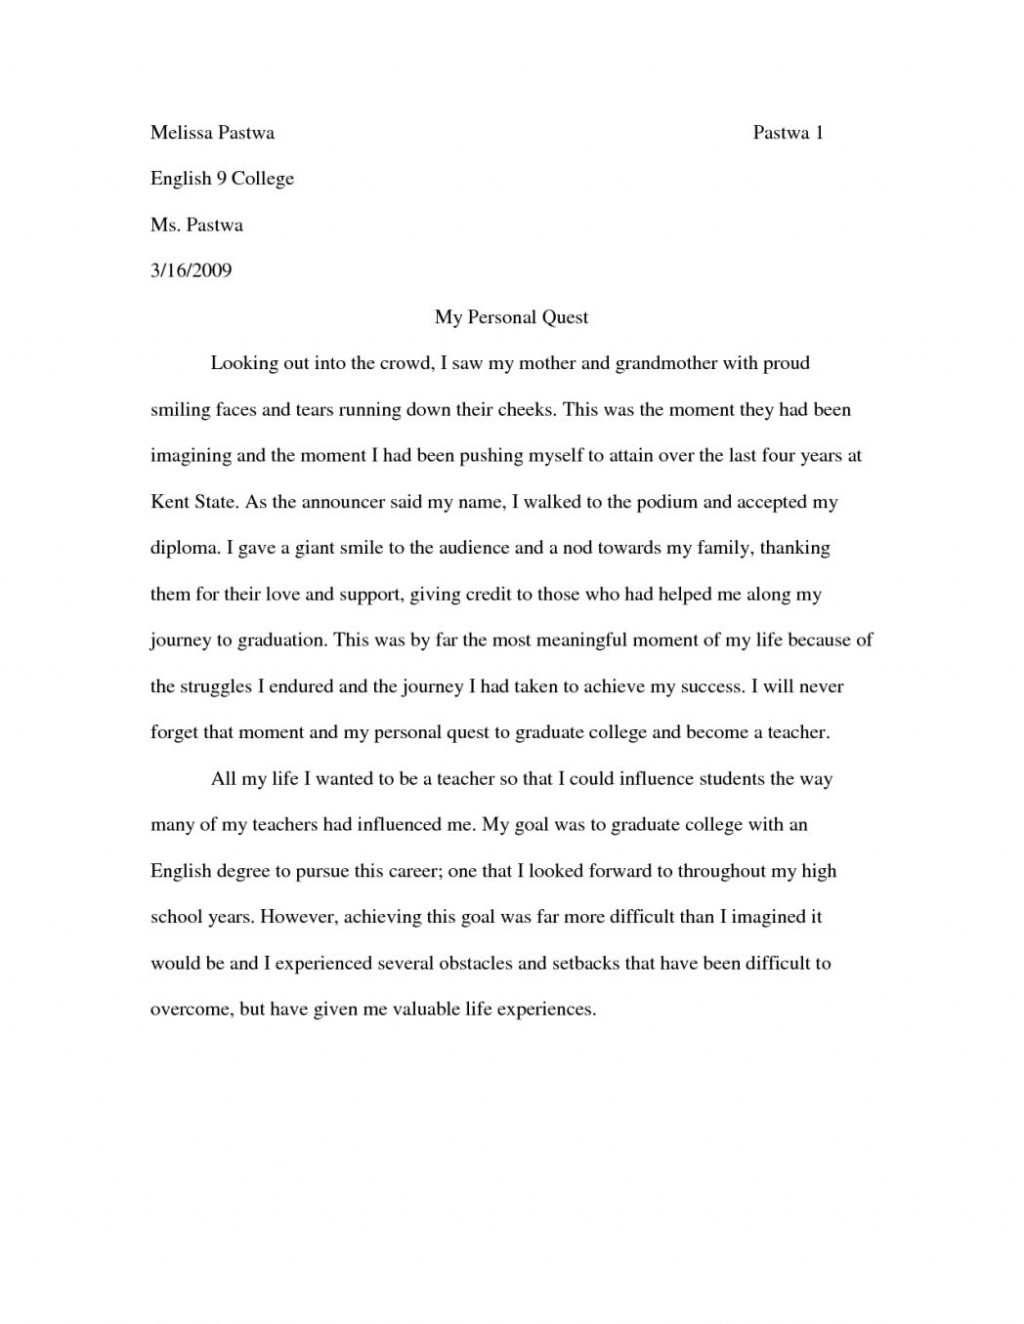 005 College Essays Printables Corner Harvard Prompts Ecza Solinf Co Best Ucf Prompt Pomona Mit Uc Texas Amherst Boston 1048x1356 Archaicawful Essay 2017 Large